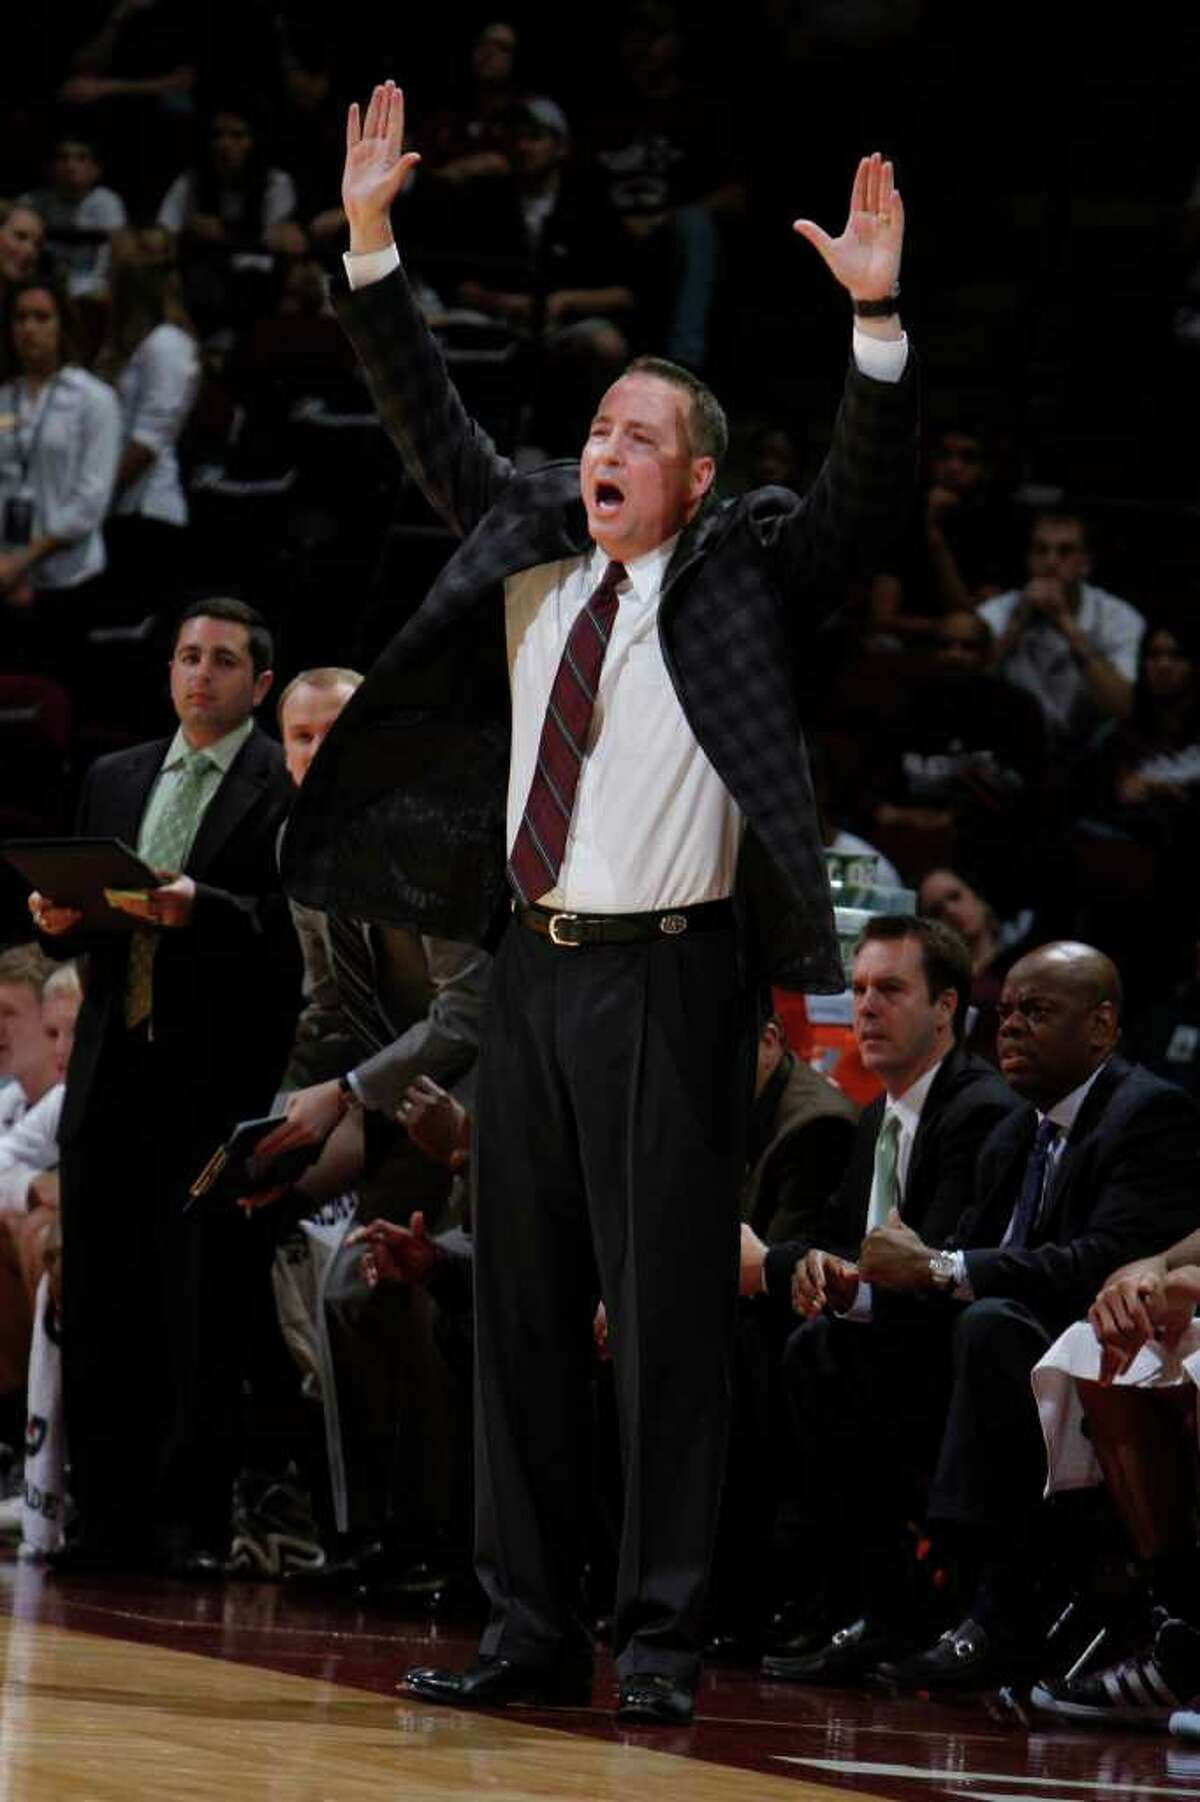 Texas A&M coach Billy Kennedy argues a call during the second half of an NCAA college basketball game against Stephen F. Austin, Saturday, Dec. 3, 2011, in College Station, Texas. Texas A&M won 55-42. (AP Photo/Jon Eilts)